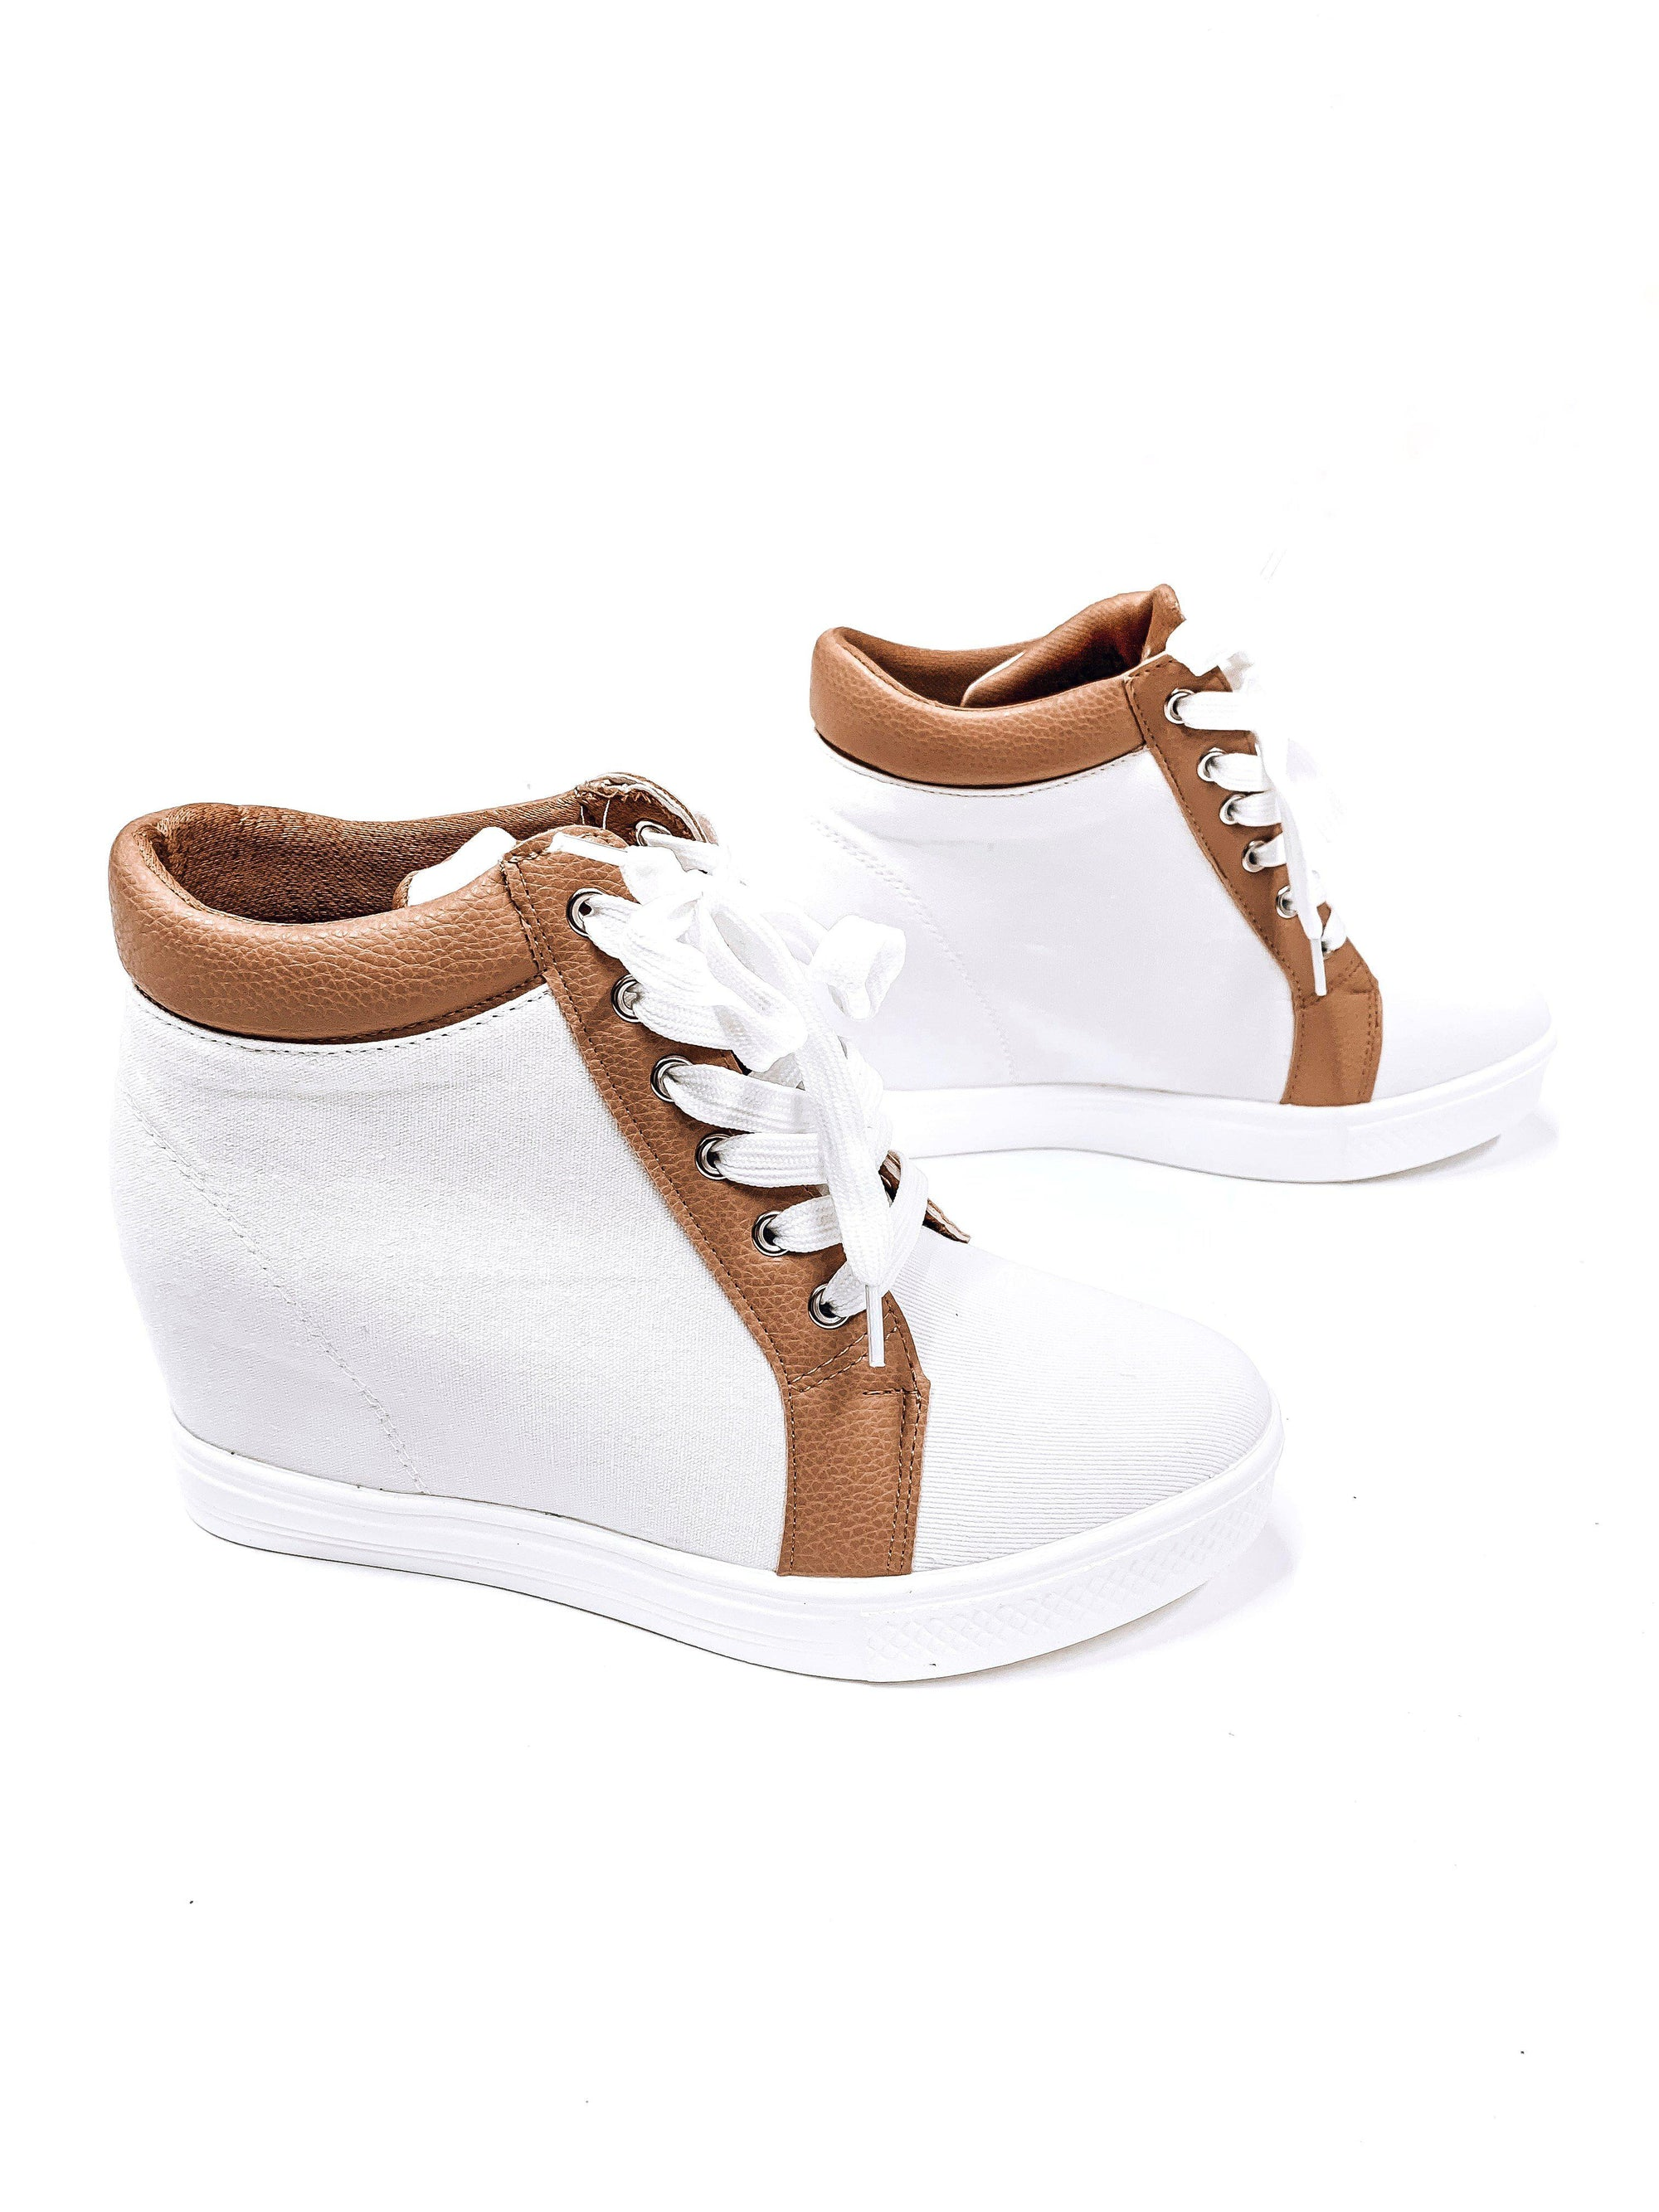 The Alex-Toffee-Women's SHOES-New Arrivals-Runway Seven